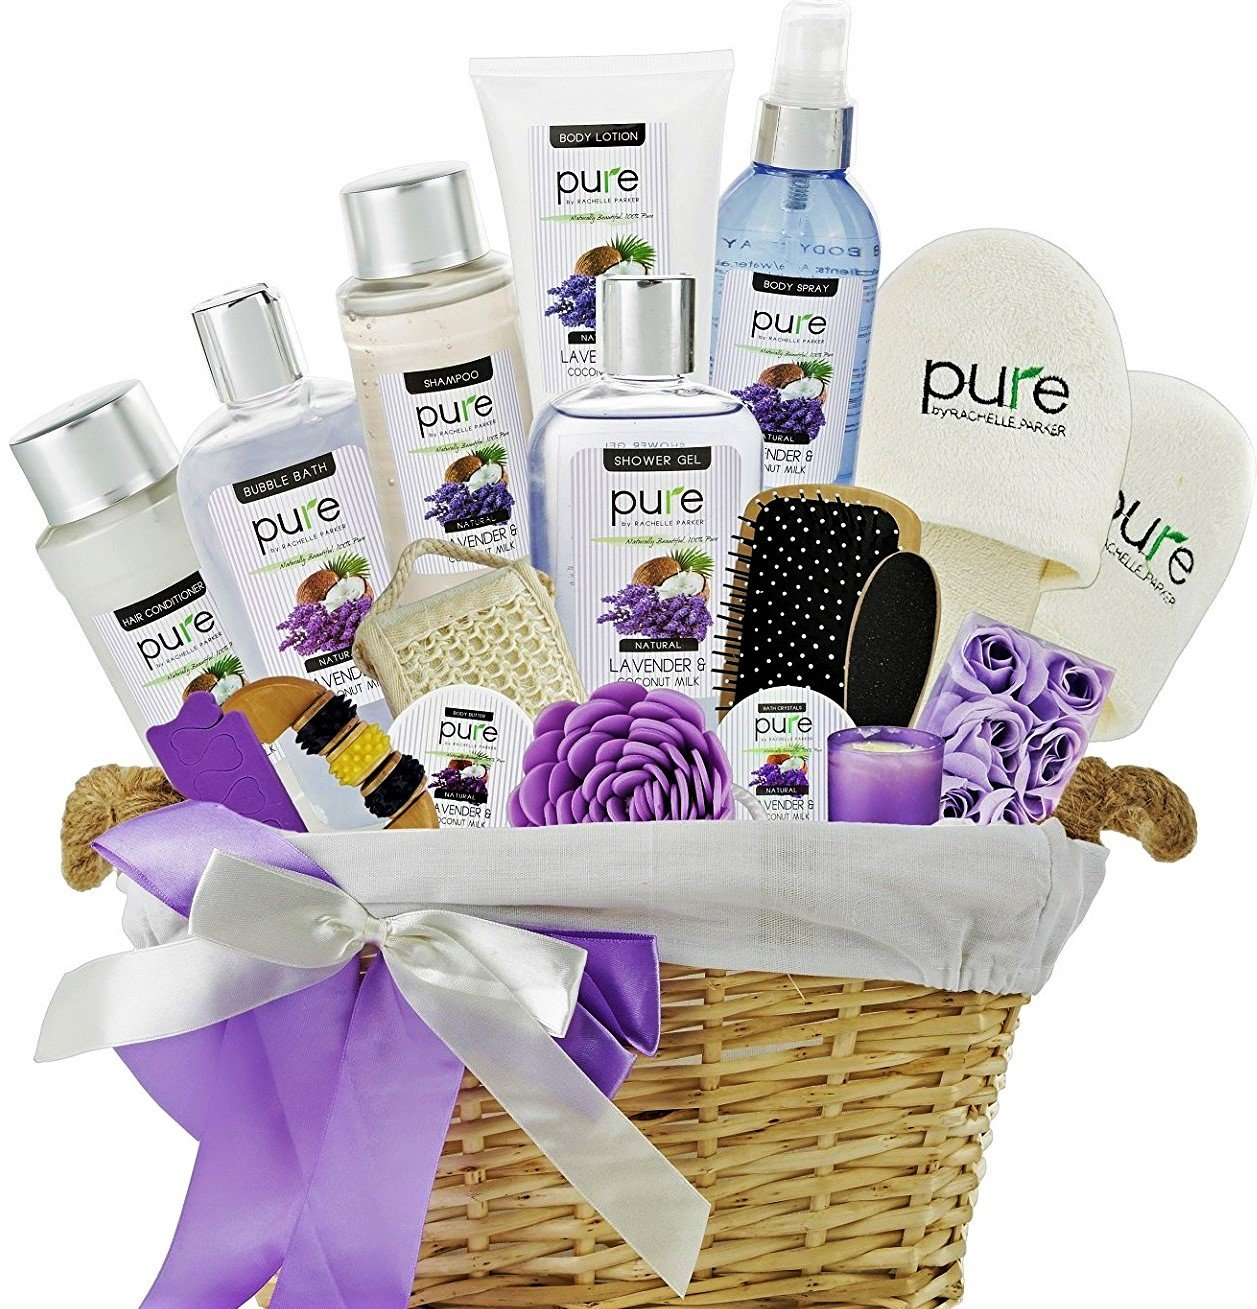 Lavender Spa Gift Basket for Women - Extra Large Bath Gift Set with Lavender Essential Oil for Relaxation Gift & Pampering Bath & Body Gifts (Lavender Coconut)